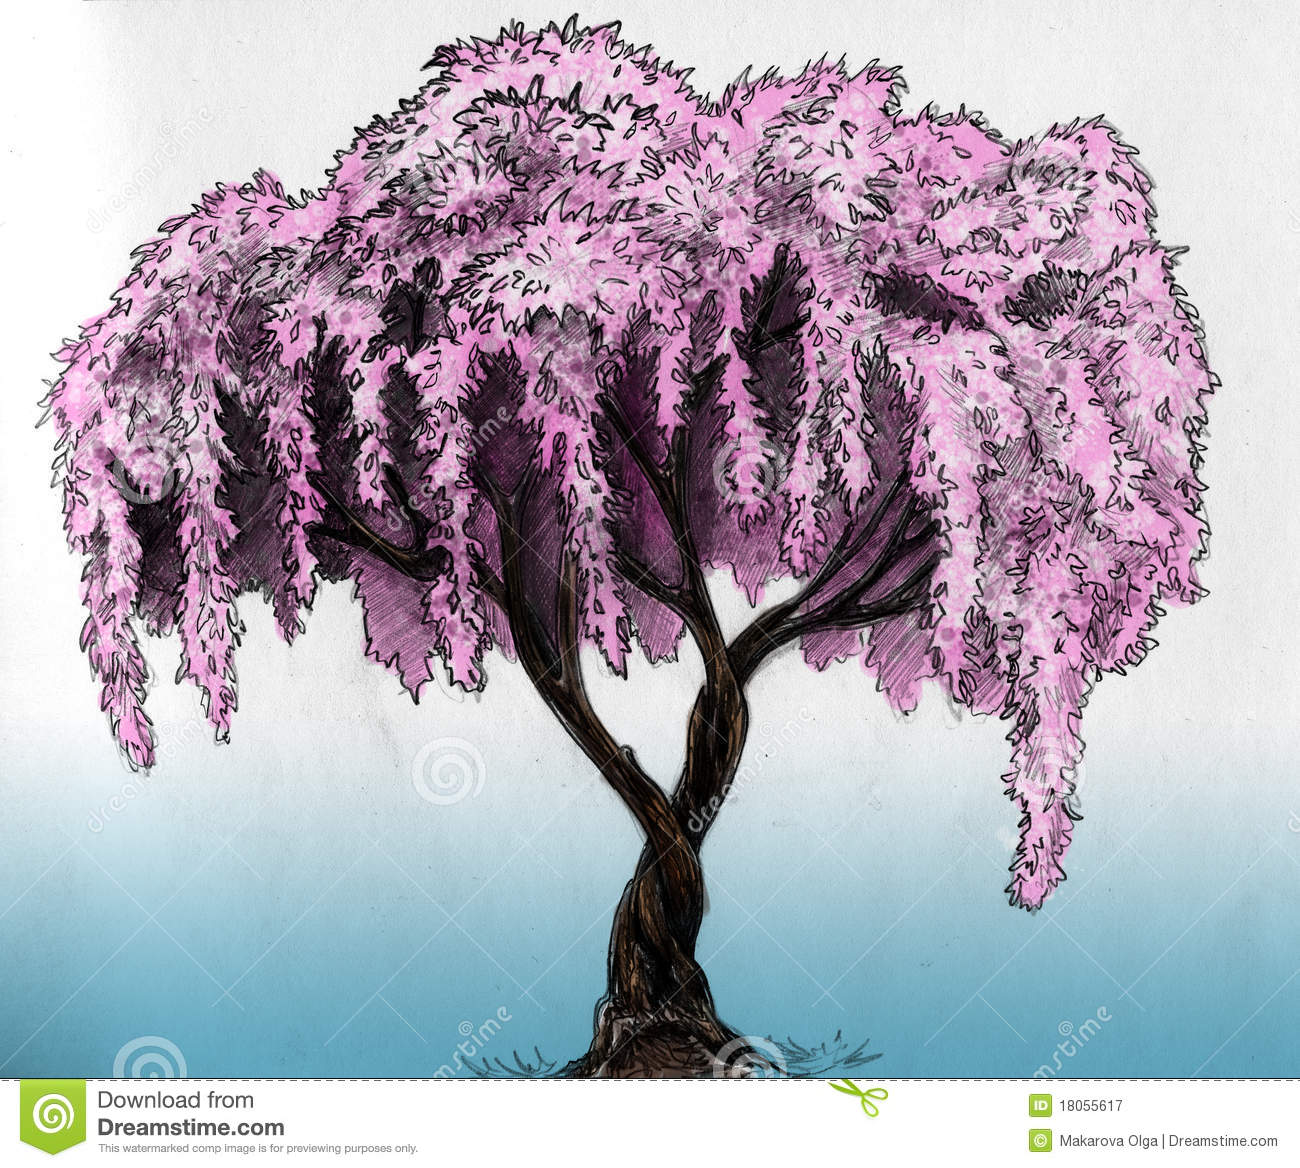 Sakura cherry plum of apple tree in blossom pencil drawing sketch colored